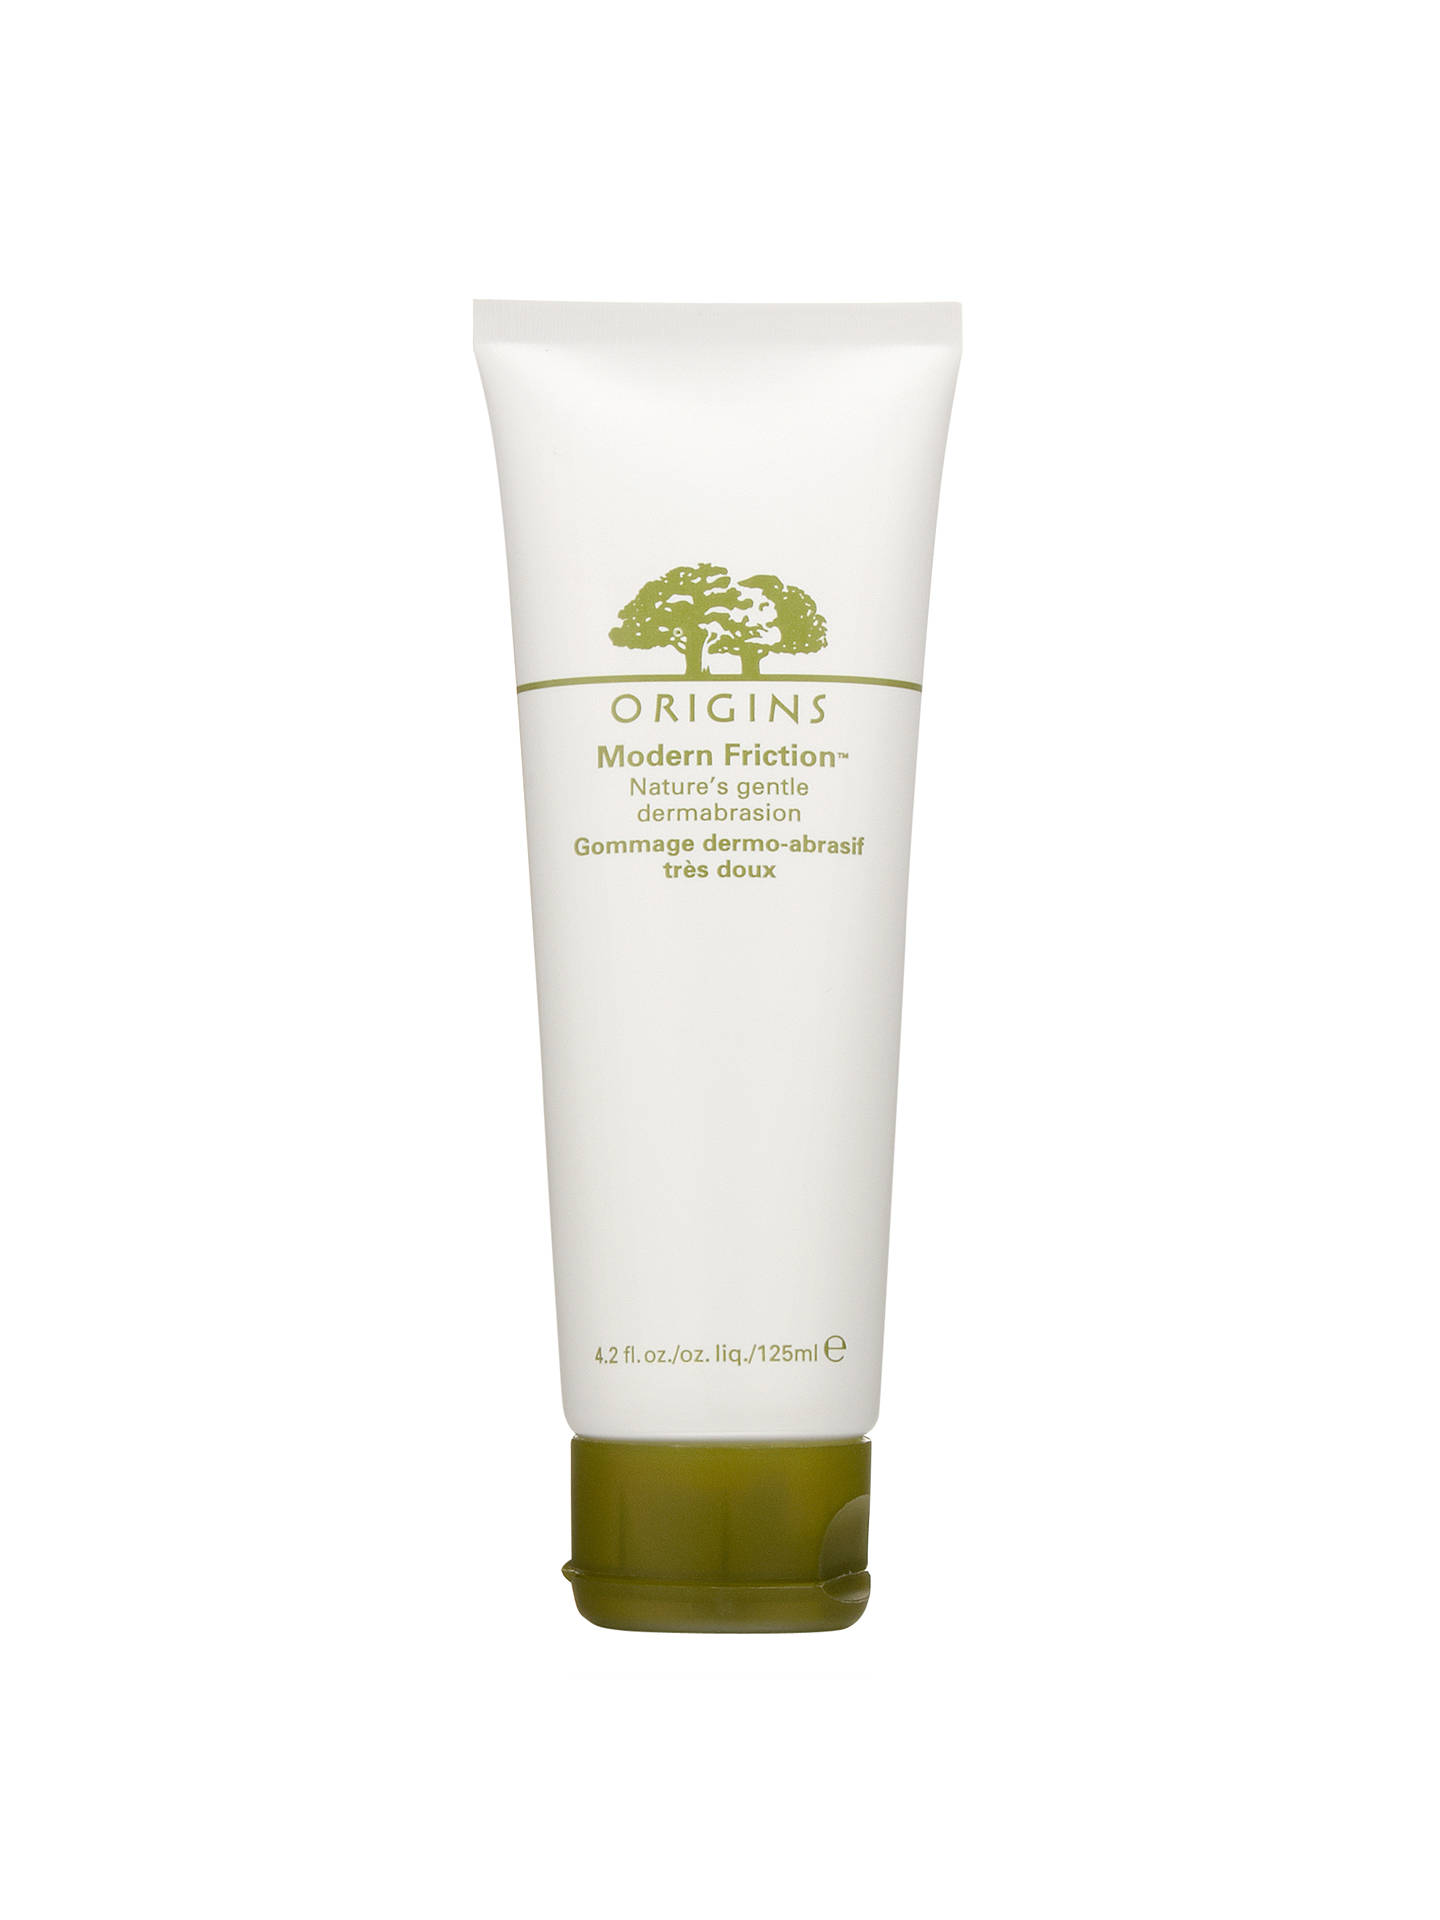 BuyOrigins Modern Friction™ Nature's Gentle Dermabrasion, 125ml Online at johnlewis.com